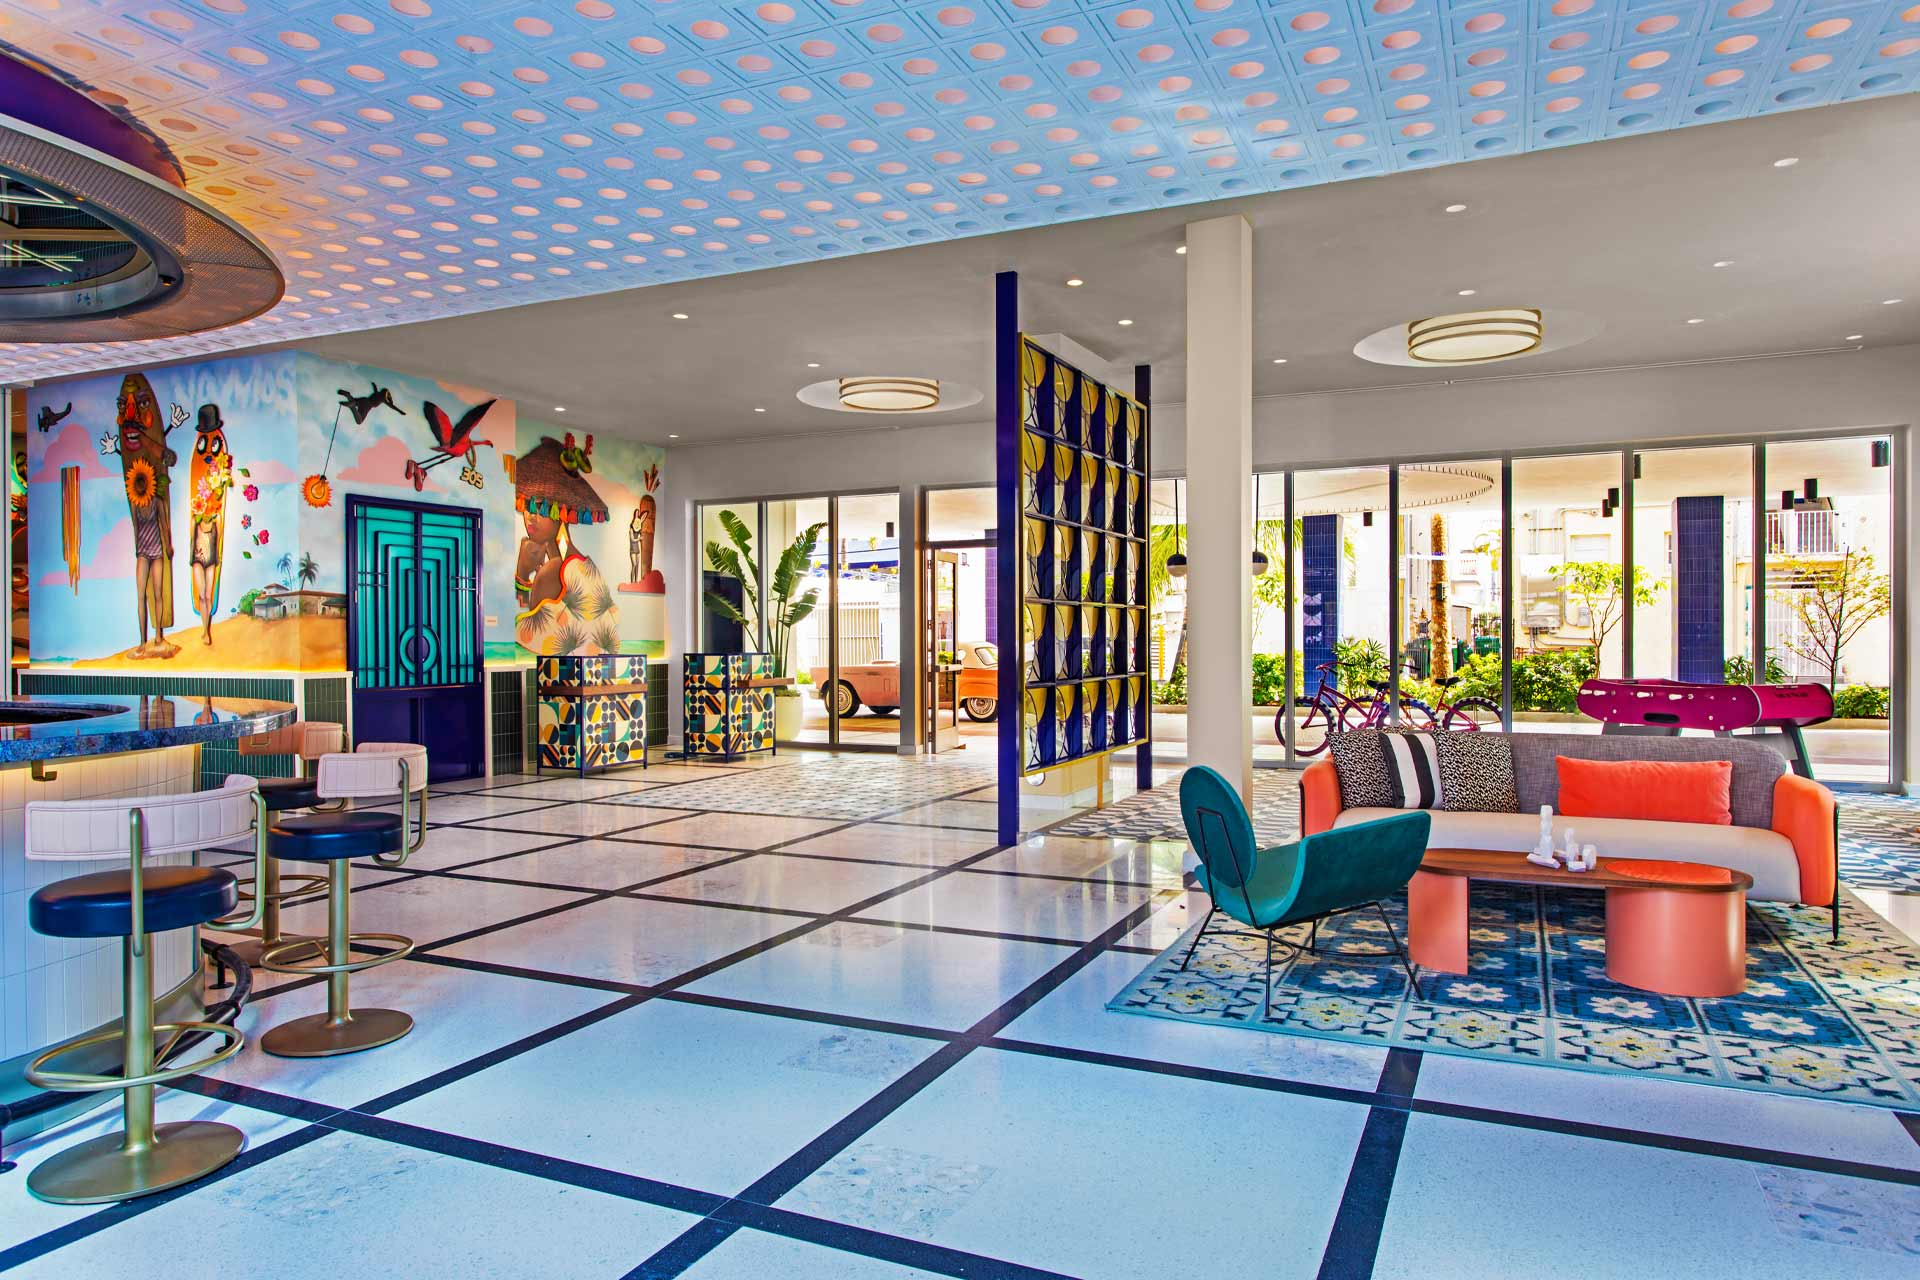 The ground floor at Moxy Miami South Beach